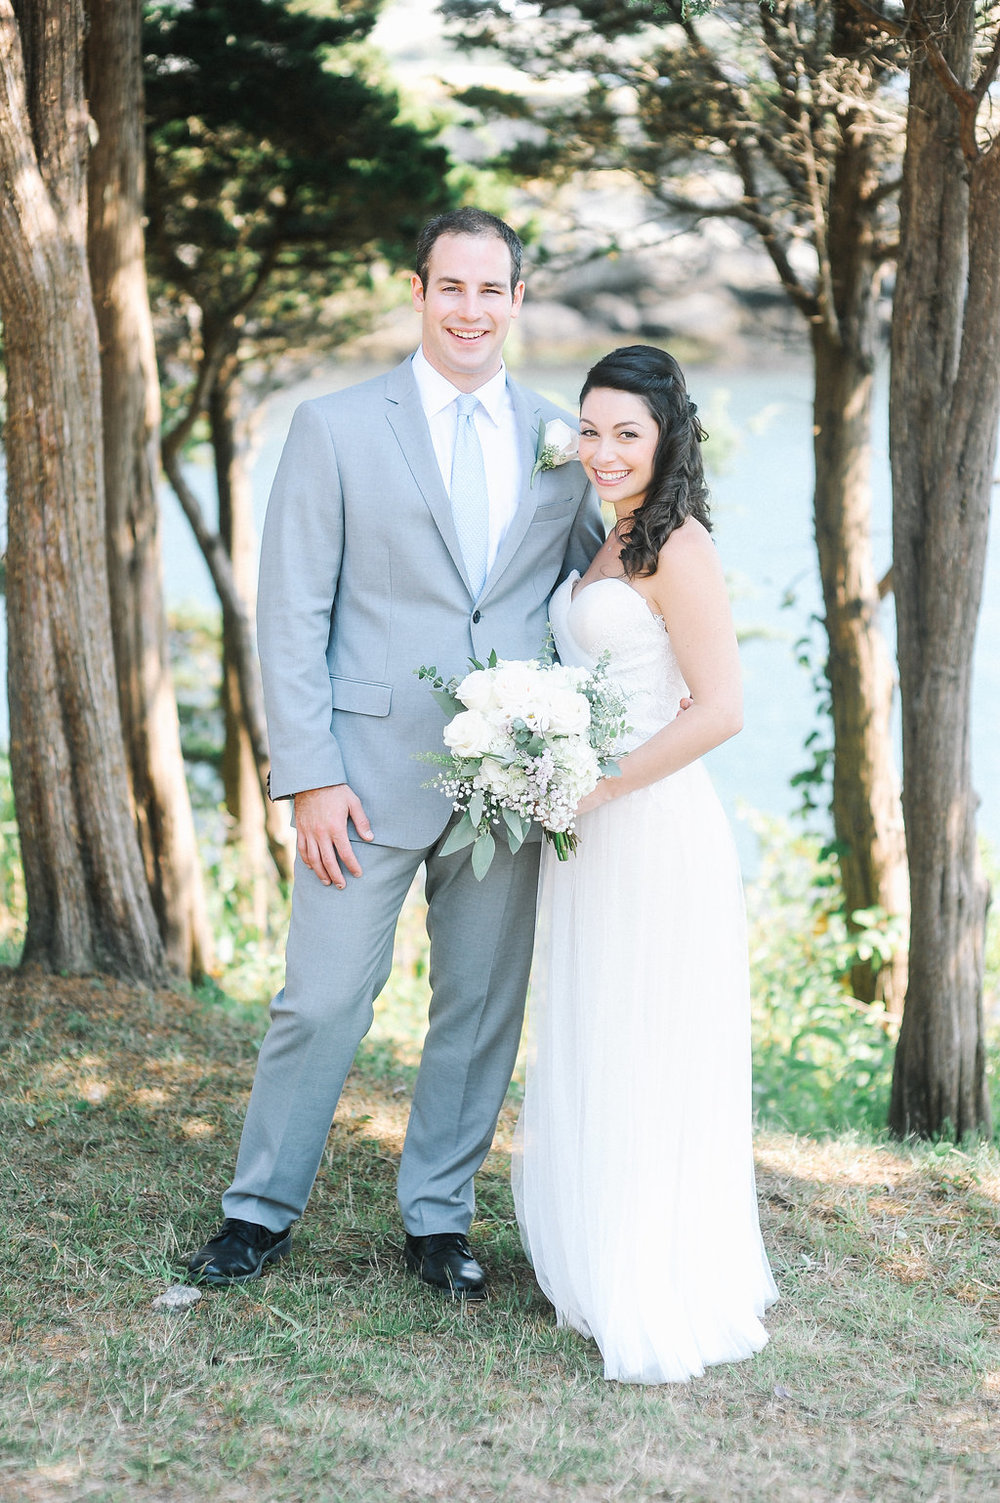 BrideGroomPortraits_Dragonline_Studios_Jamestown_RI_Wedding-66.jpg